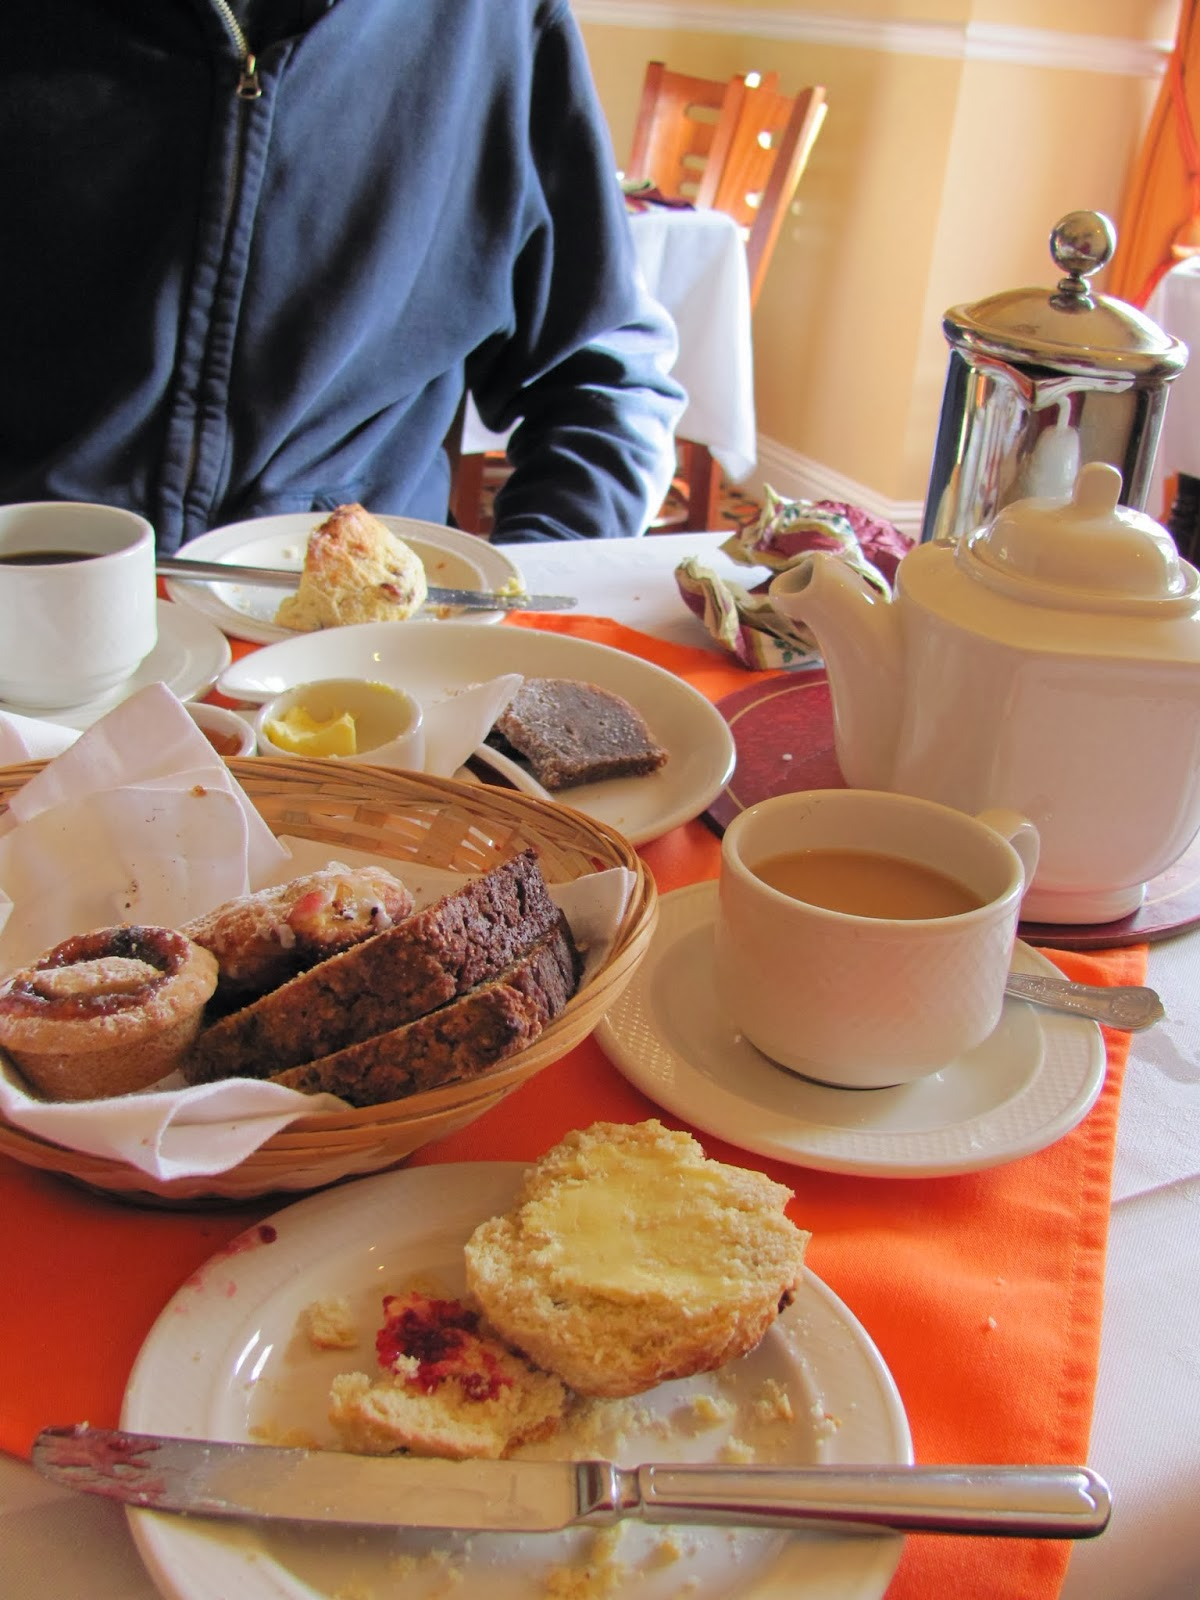 Coffee, Tea, and Cakes at Garnish House, Cork, Ireland